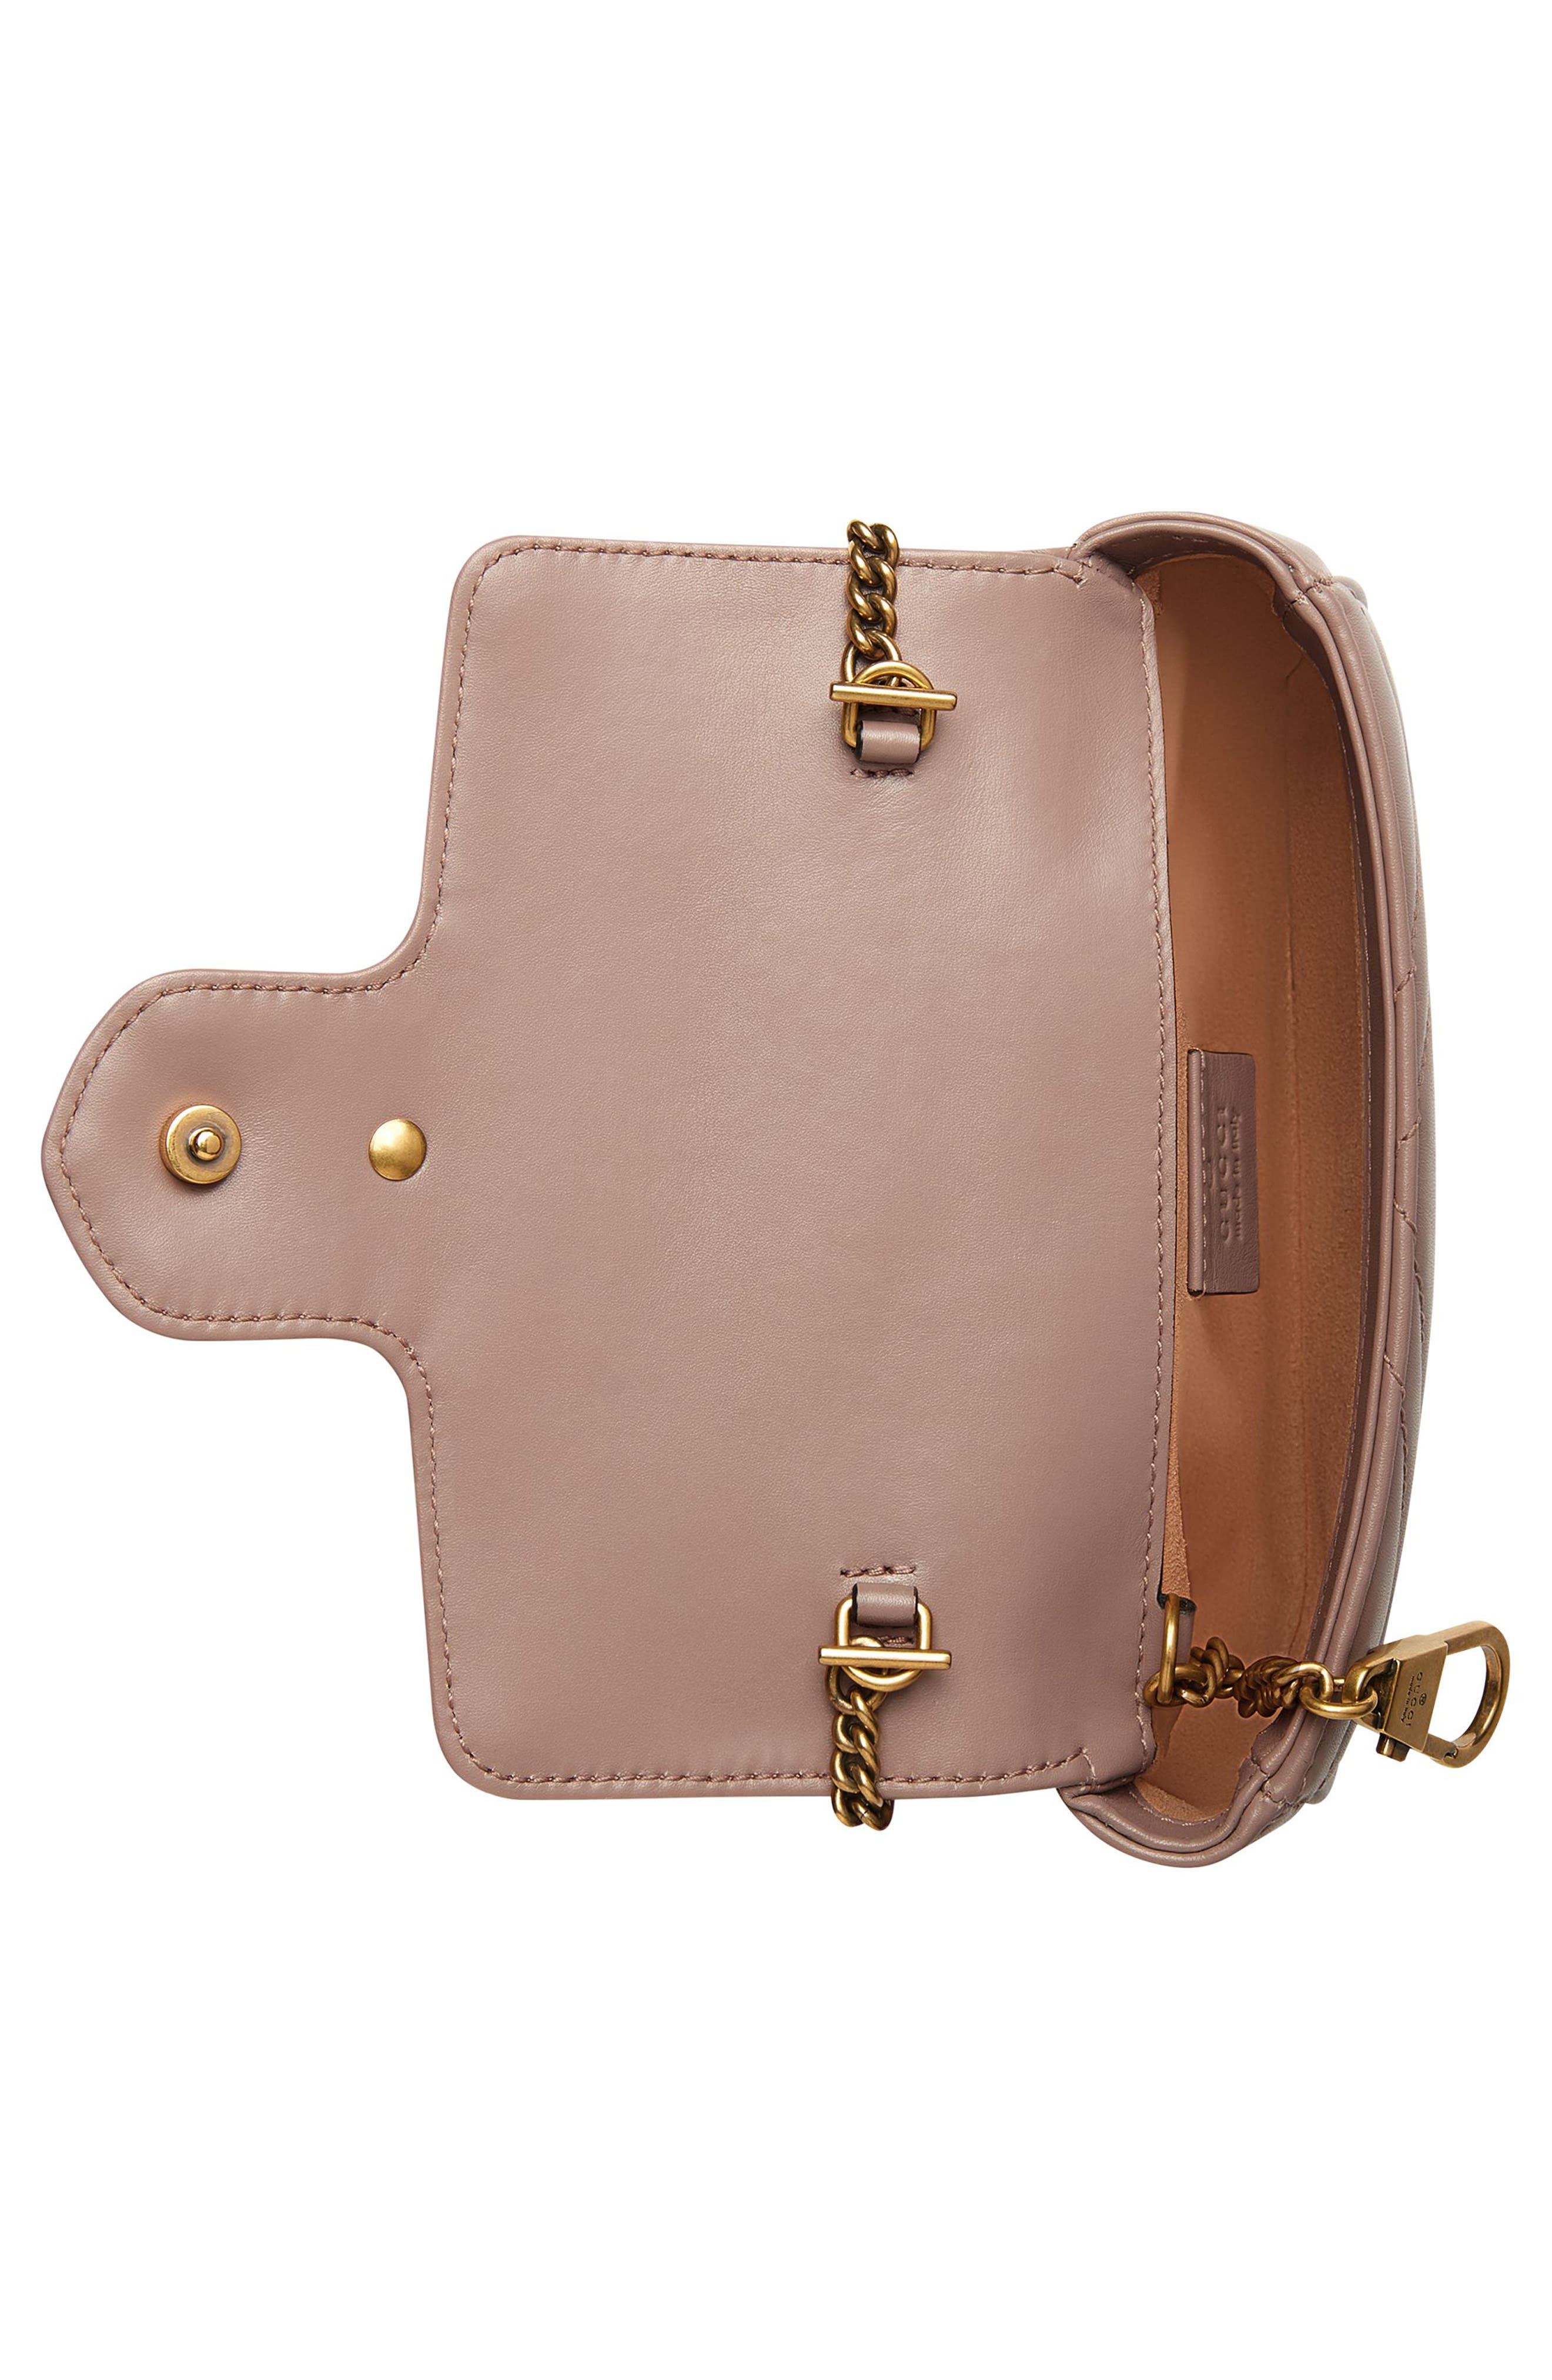 Supermini GG Marmont 2.0 Matelassé Leather Shoulder Bag,                             Alternate thumbnail 4, color,                             PORCELAIN ROSE